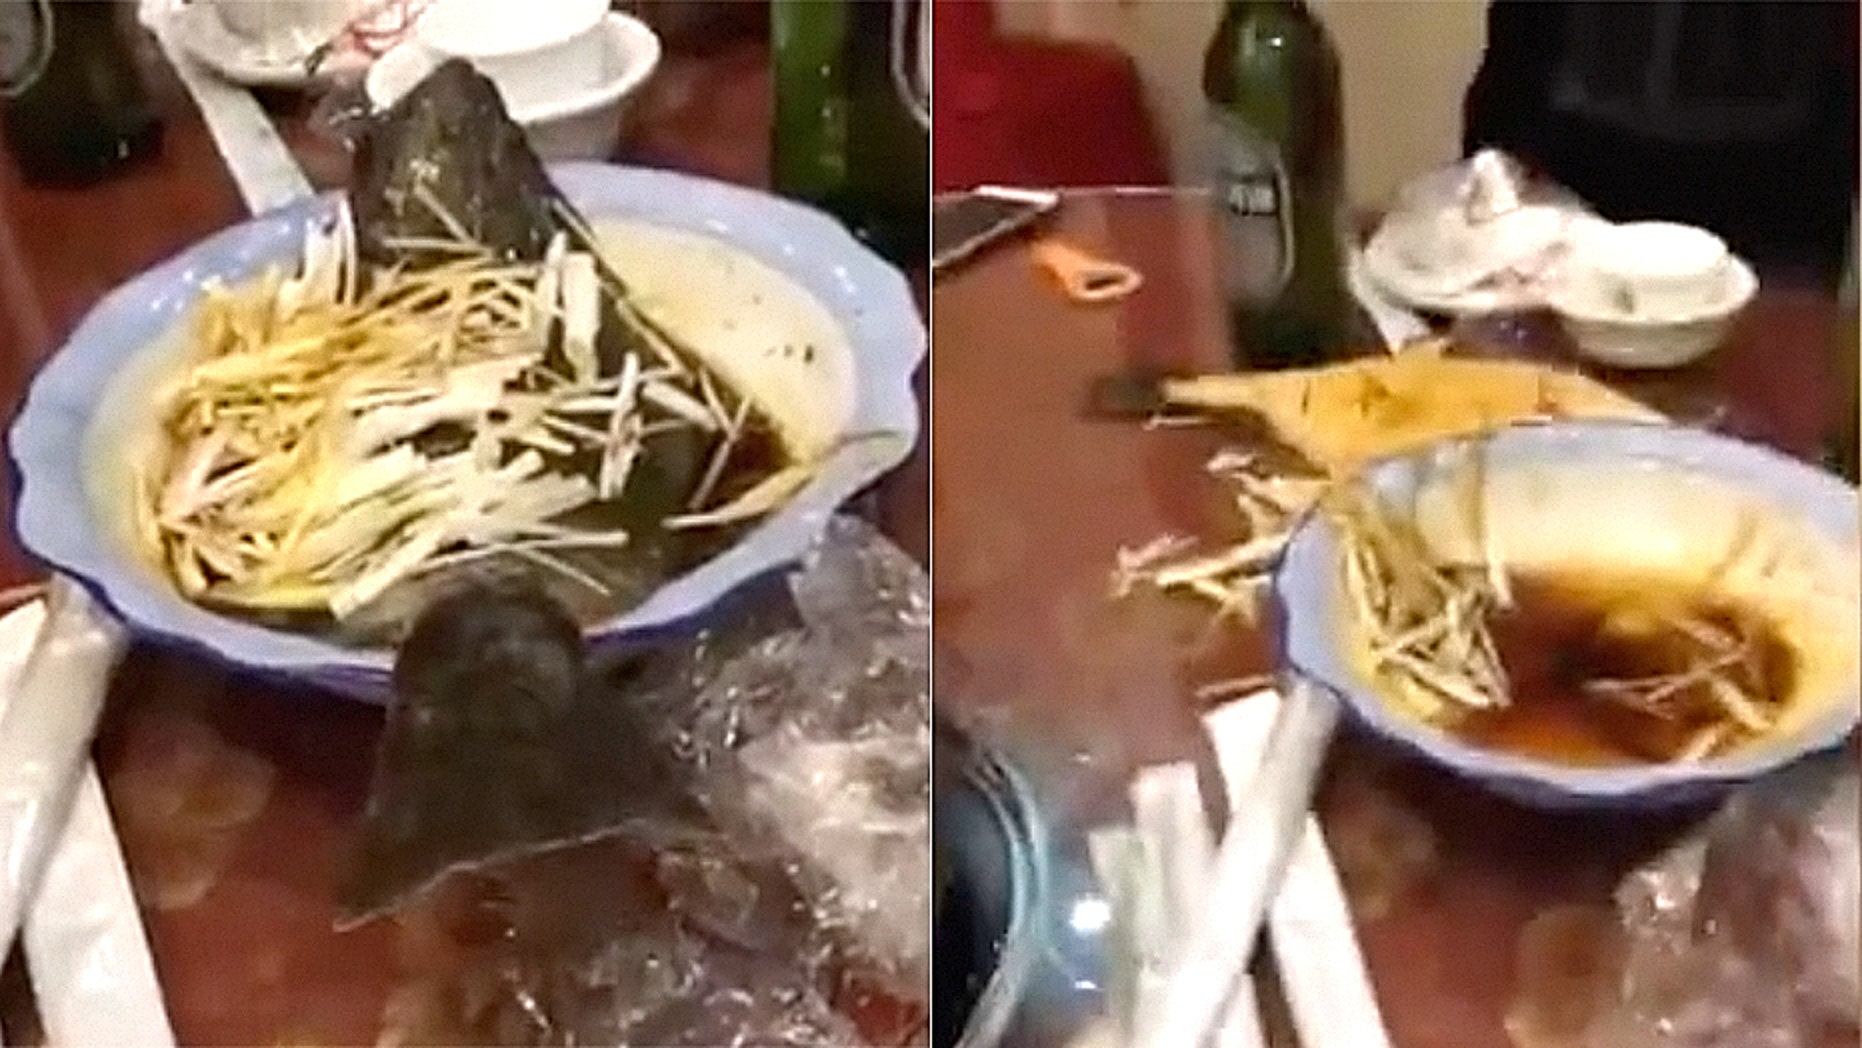 Footage from an unnamed Chinese restaurant appears to shows a fish — plated and dressed with sauce and scallions — seeming to spring to life.